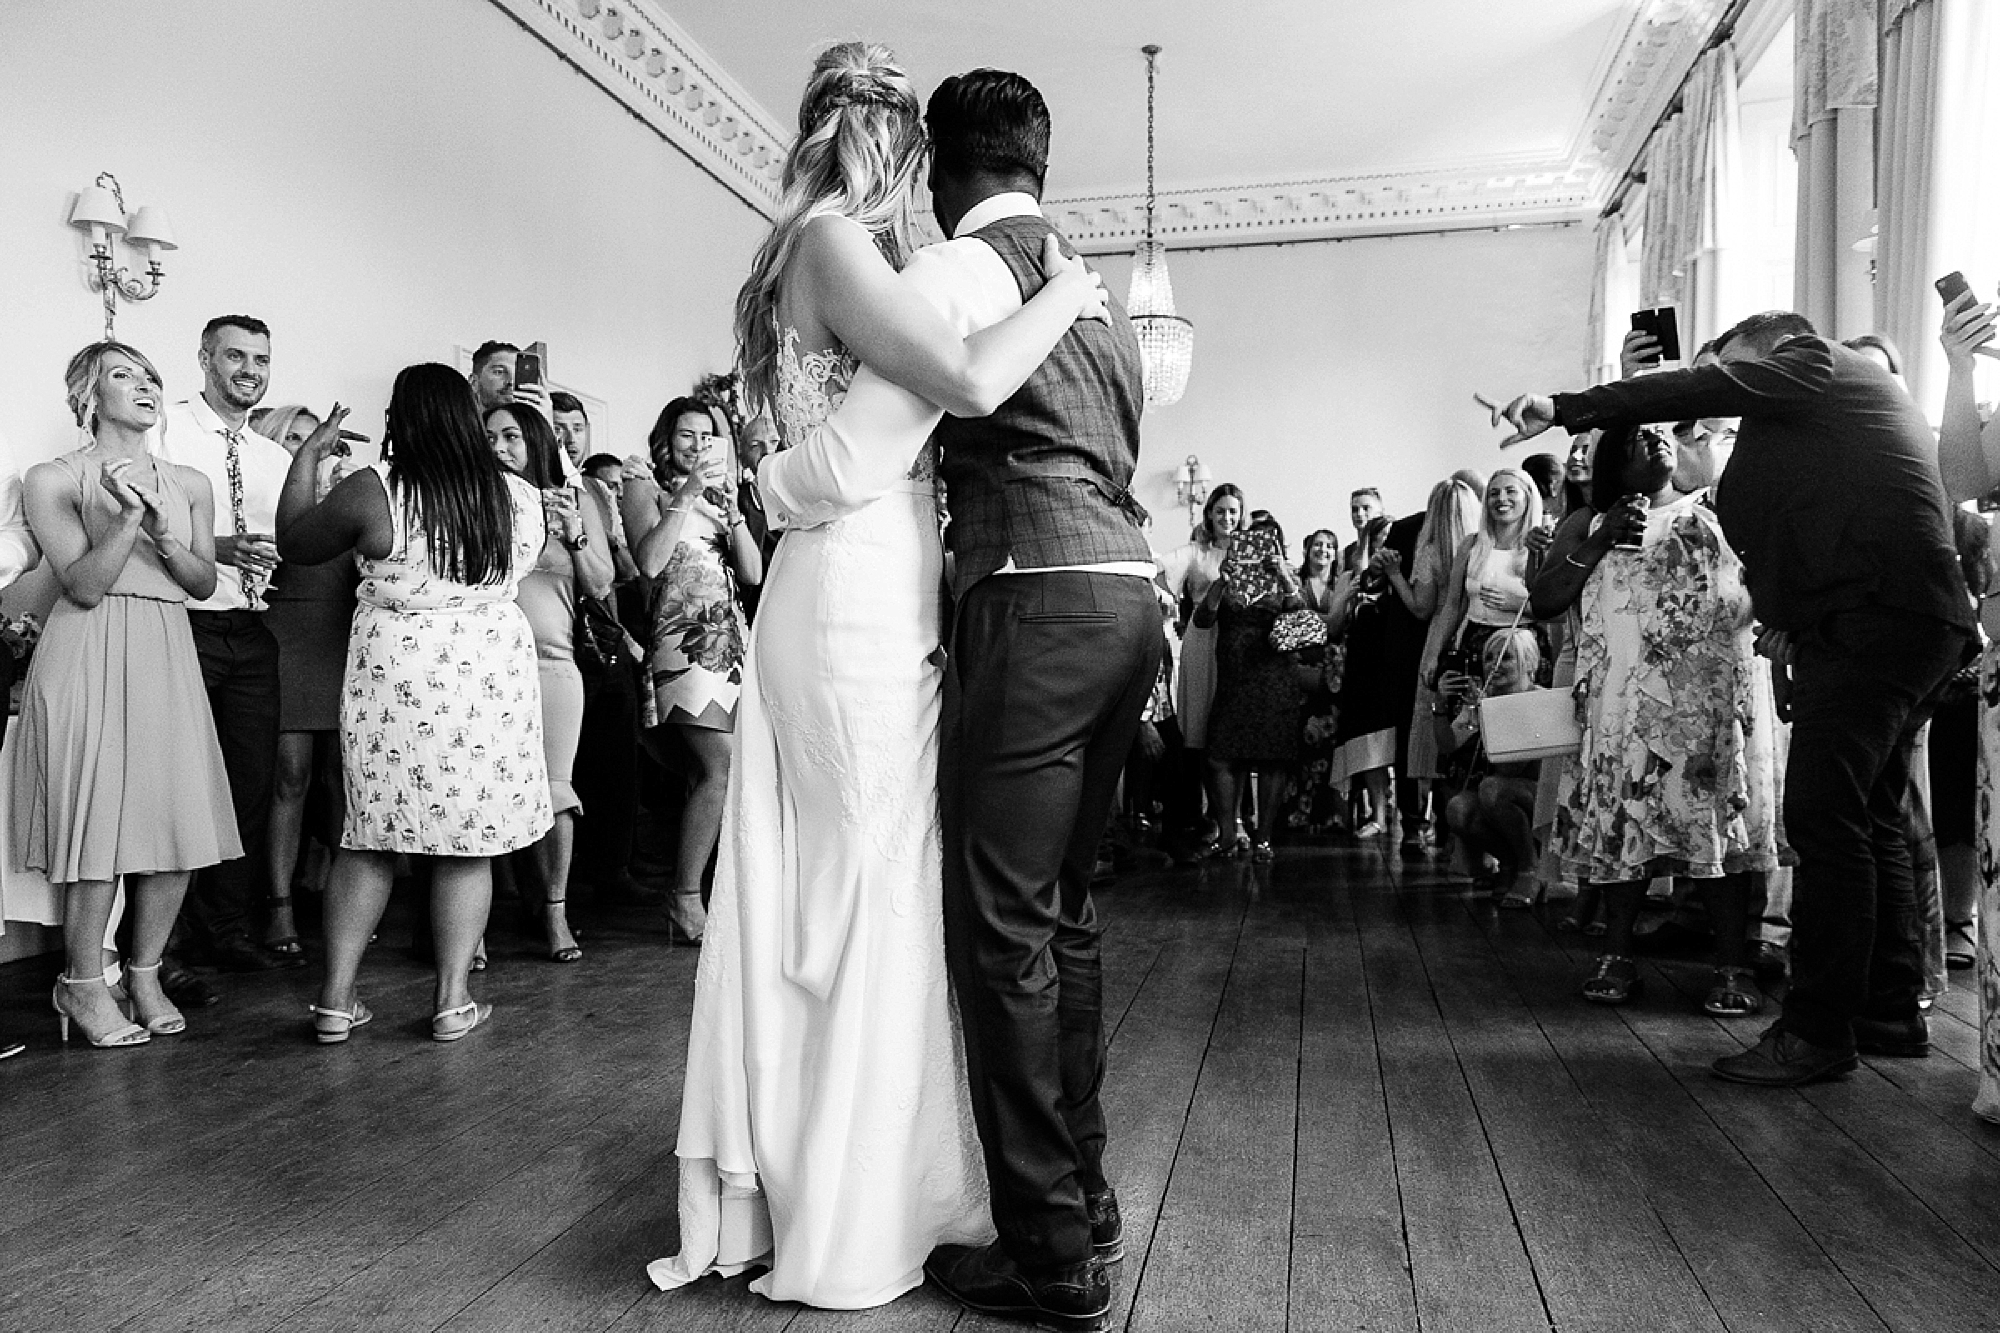 bride and groom finish their first dance in the ballroom at Pynes house as their guests watch